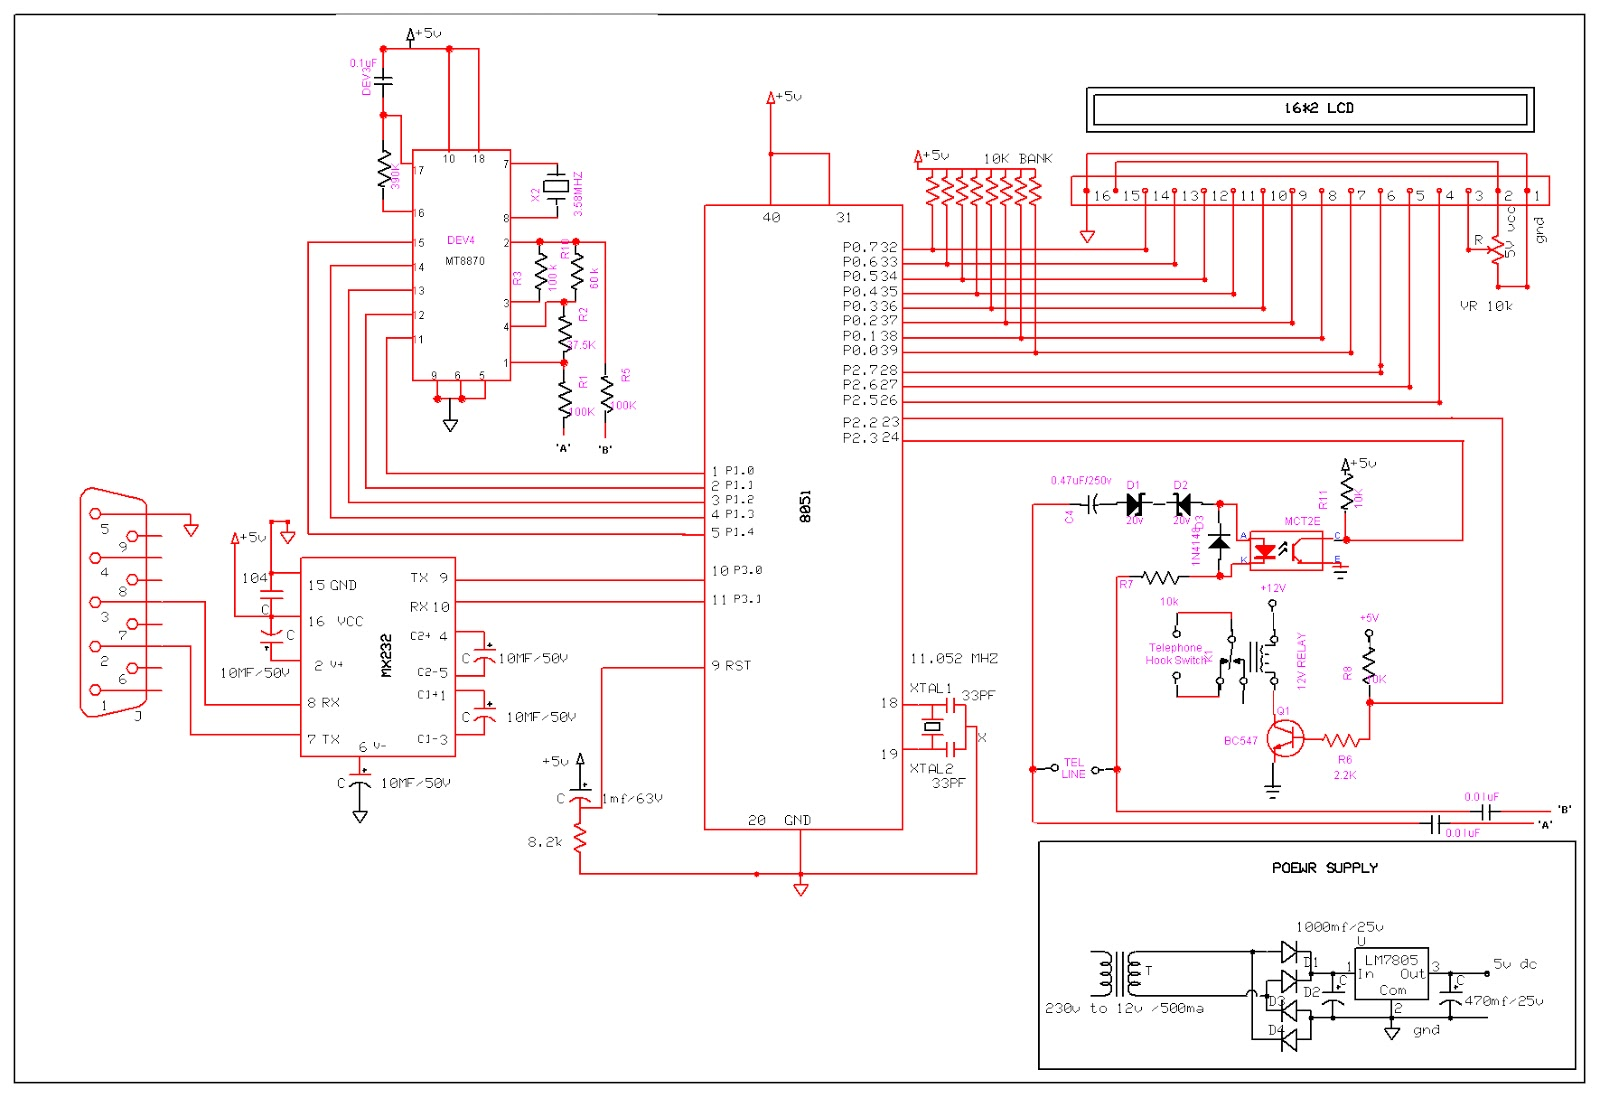 Ivrs Interactive Voice Response System Project Final Year Circuit Diagram 4